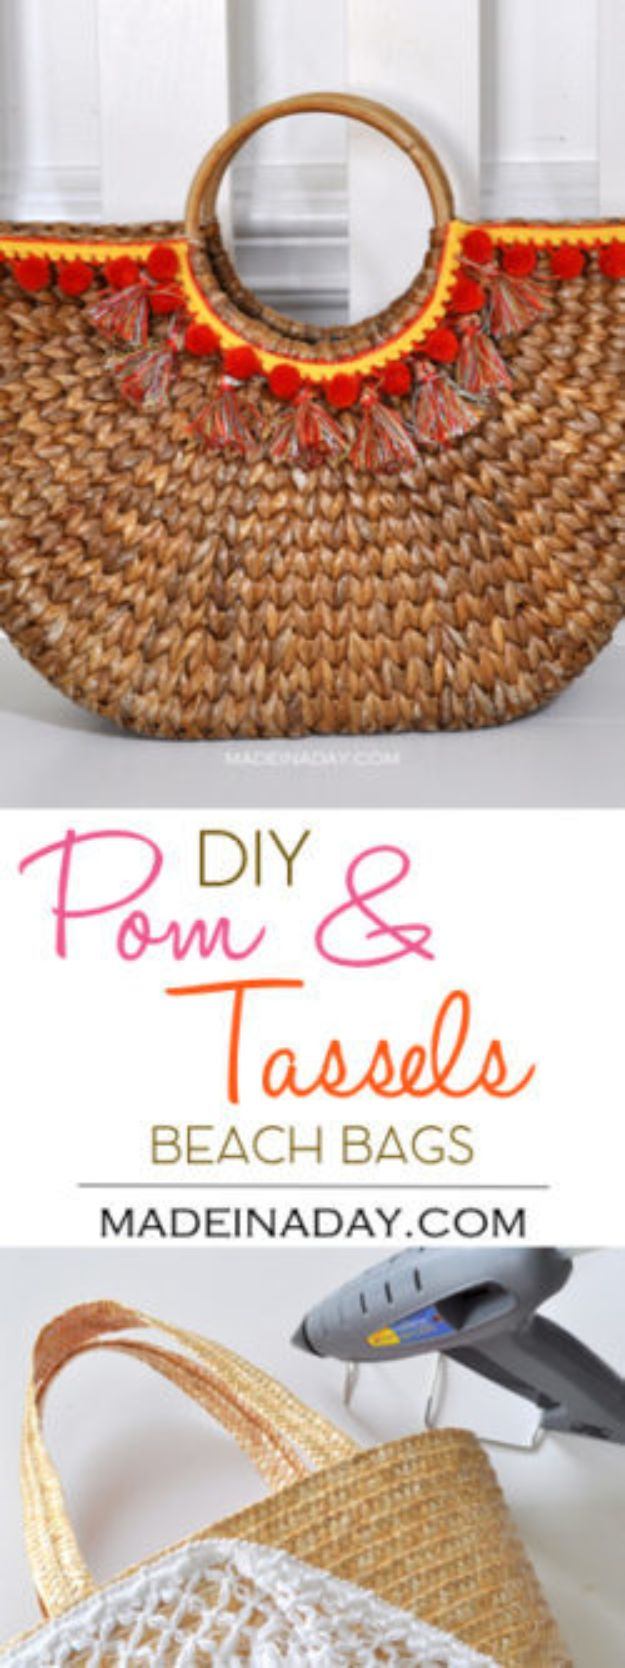 DIY Bags for Summer - DIY Pom And Tassels Beach Bags - Easy Ideas to Make for Beach and Pool - Quick Projects for a Bag on A Budget - Cute No Sew Idea, Quick Sewing Patterns - Paint and Crafts for Making Creative Beach Bags - Fun Tutorials for Kids, Teens, Teenagers, Girls and Adults